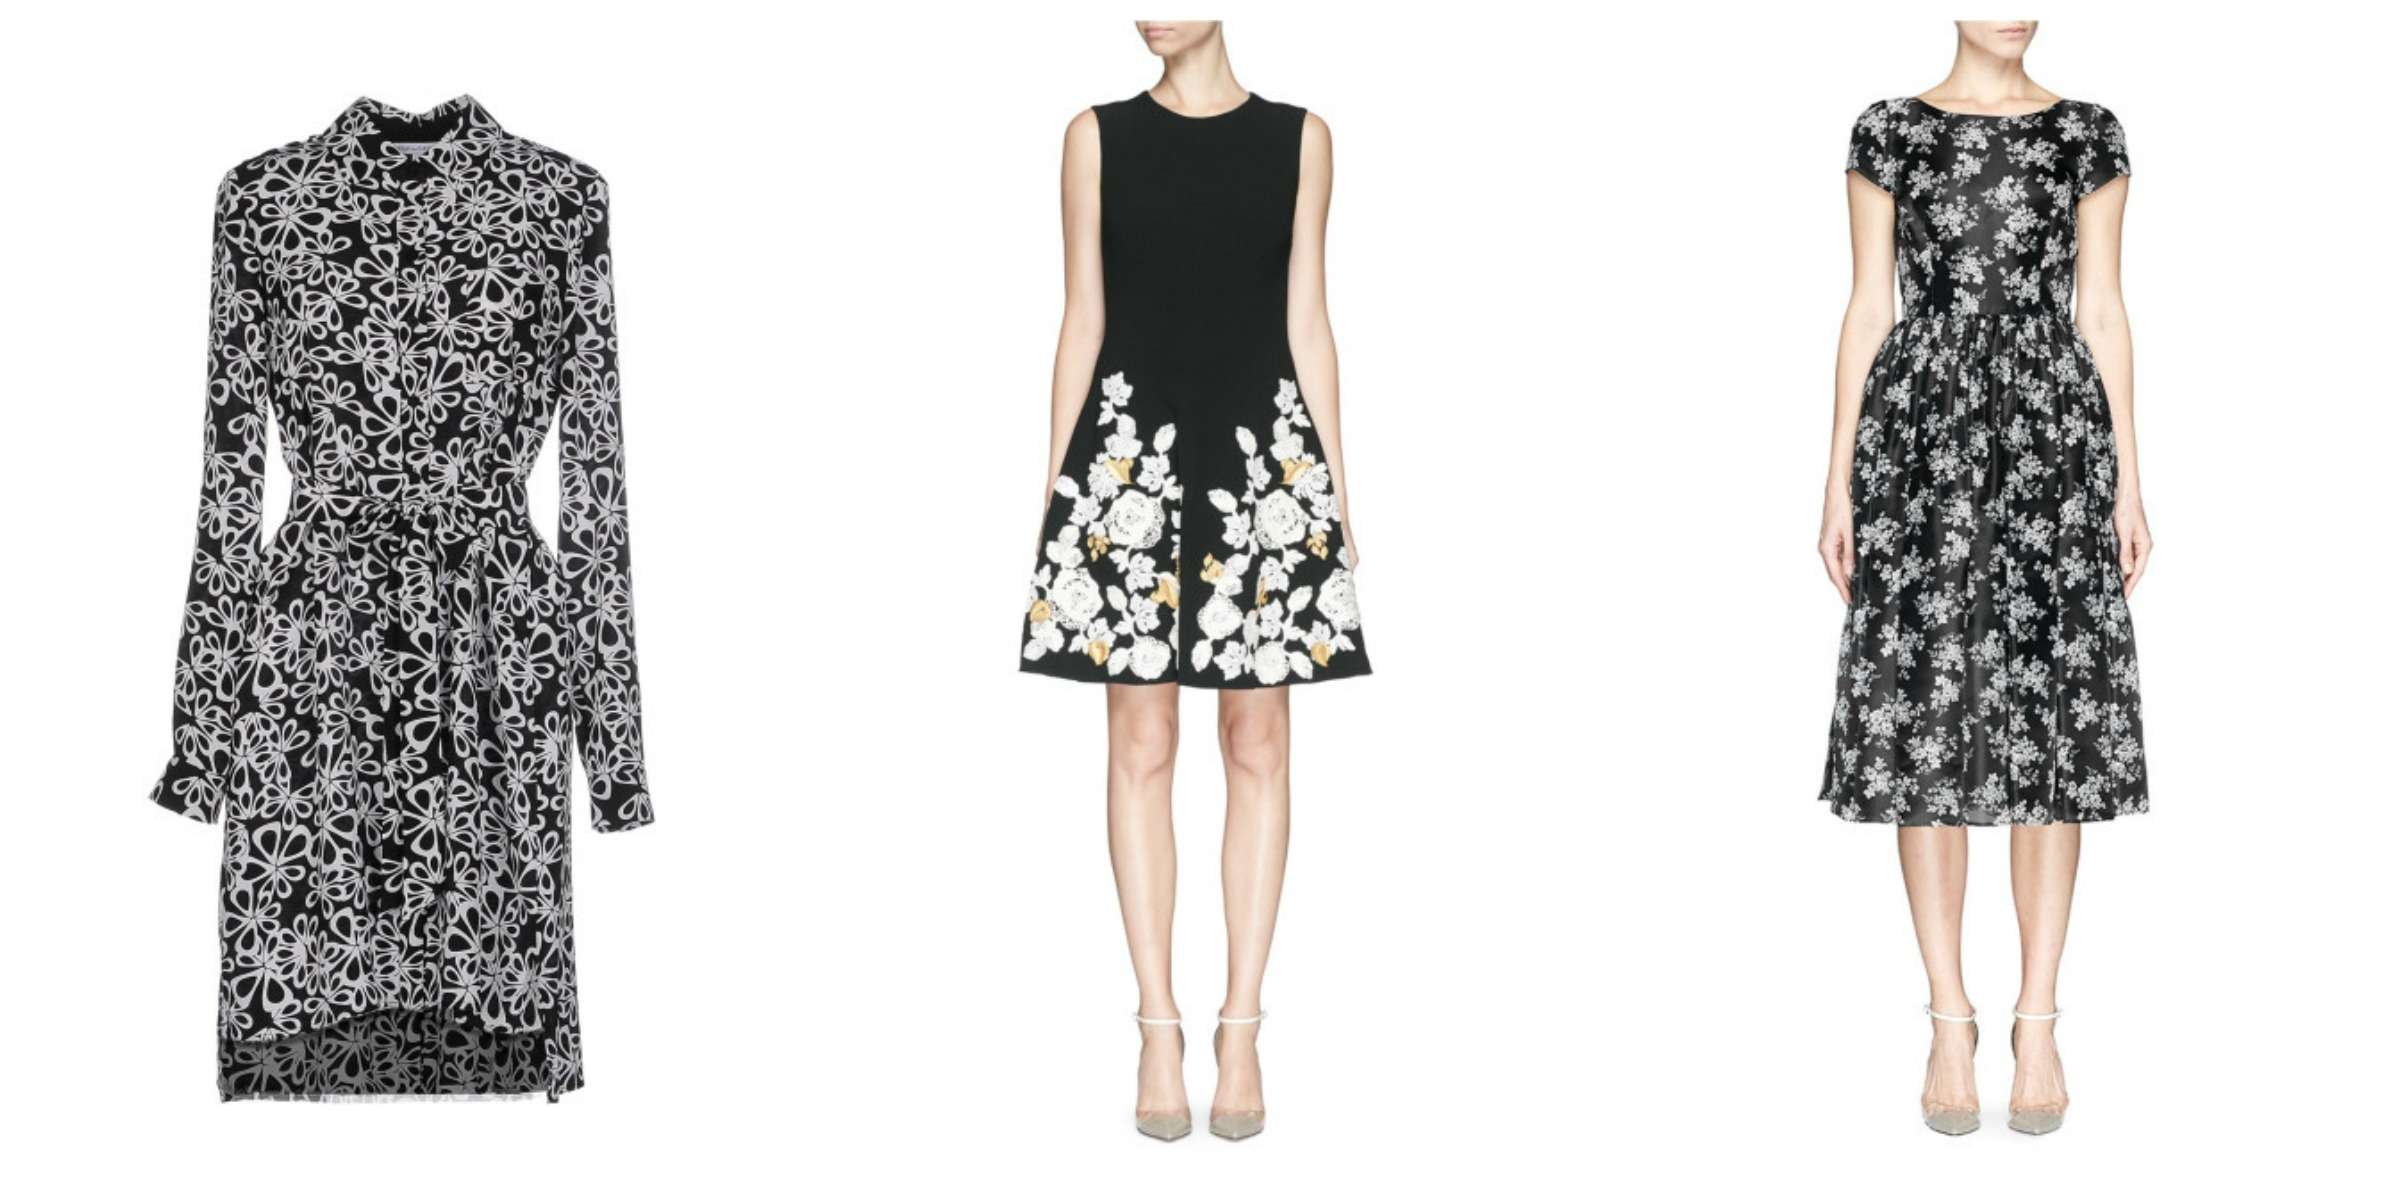 New Years Eve Dresses For Winter 2019